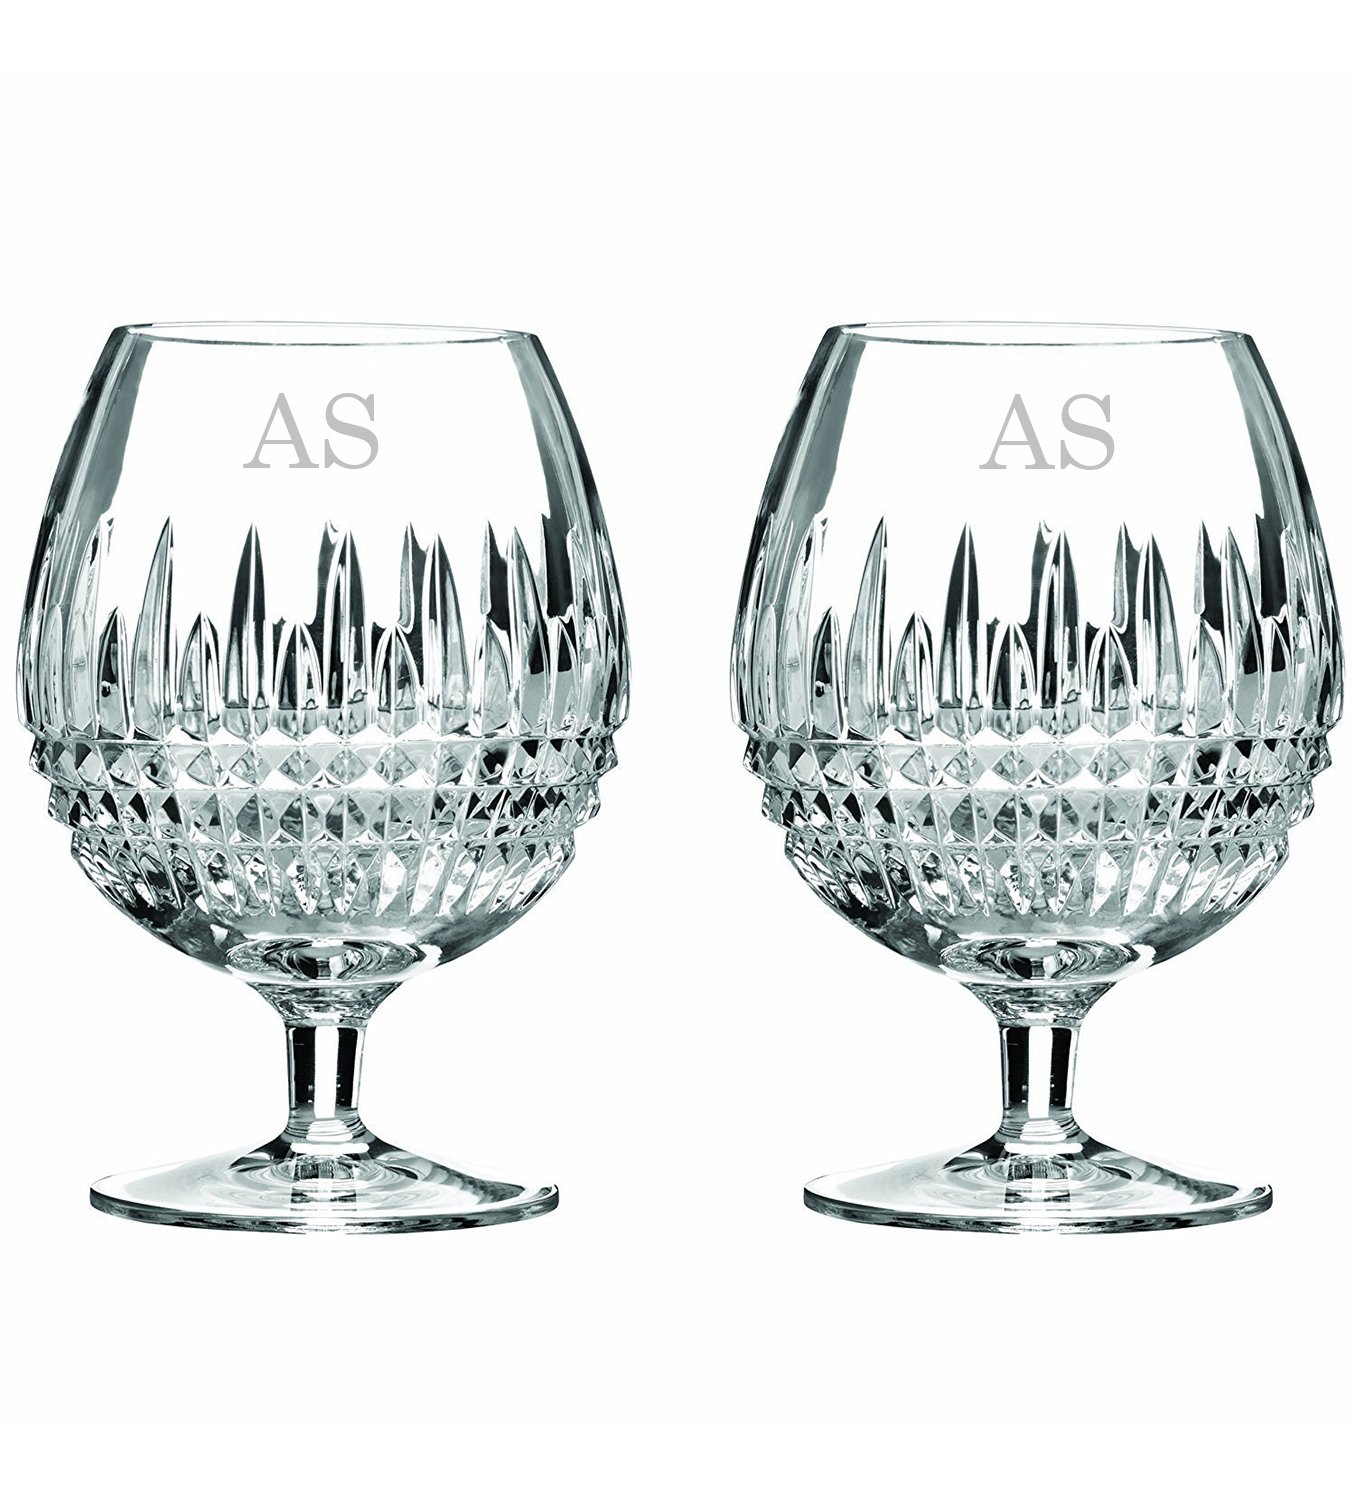 Waterford Lismore Diamond 16oz Brandy Glasses Set of 2, Custom Glasses, Engraved Glass Set, Personalized Glassware